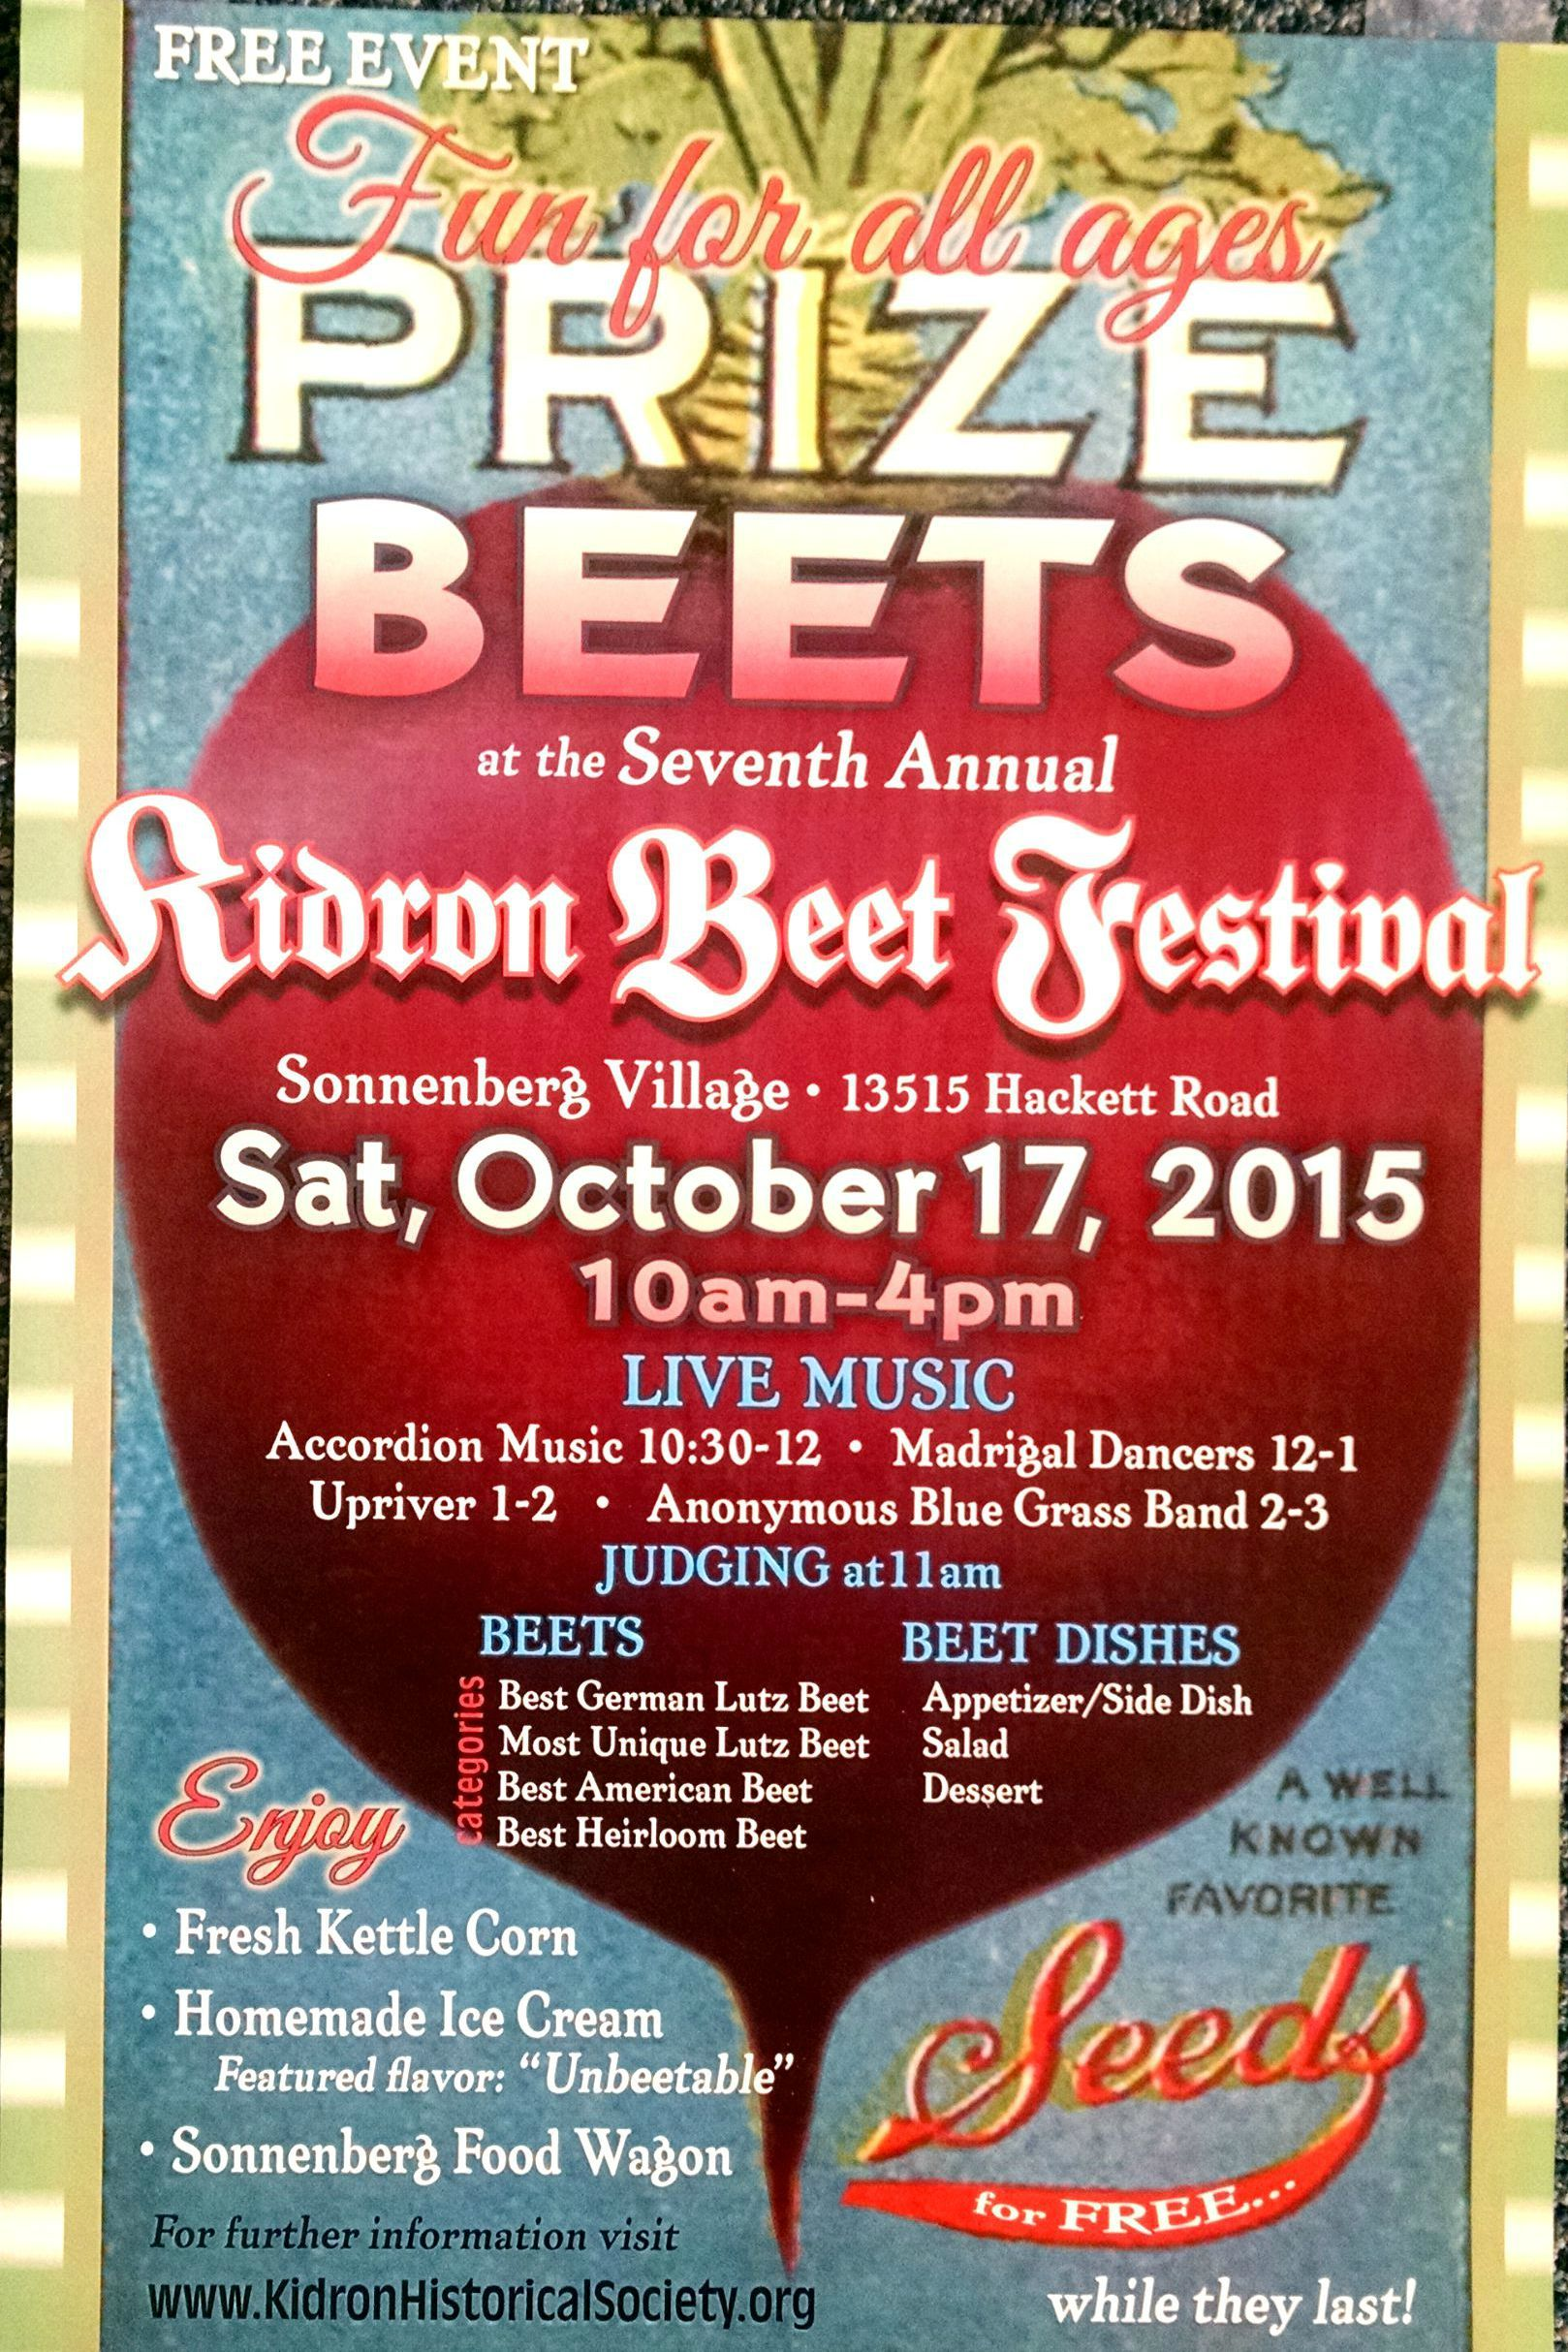 If You Love Beets This Is The Event For You Love Beets Beets Red Beets